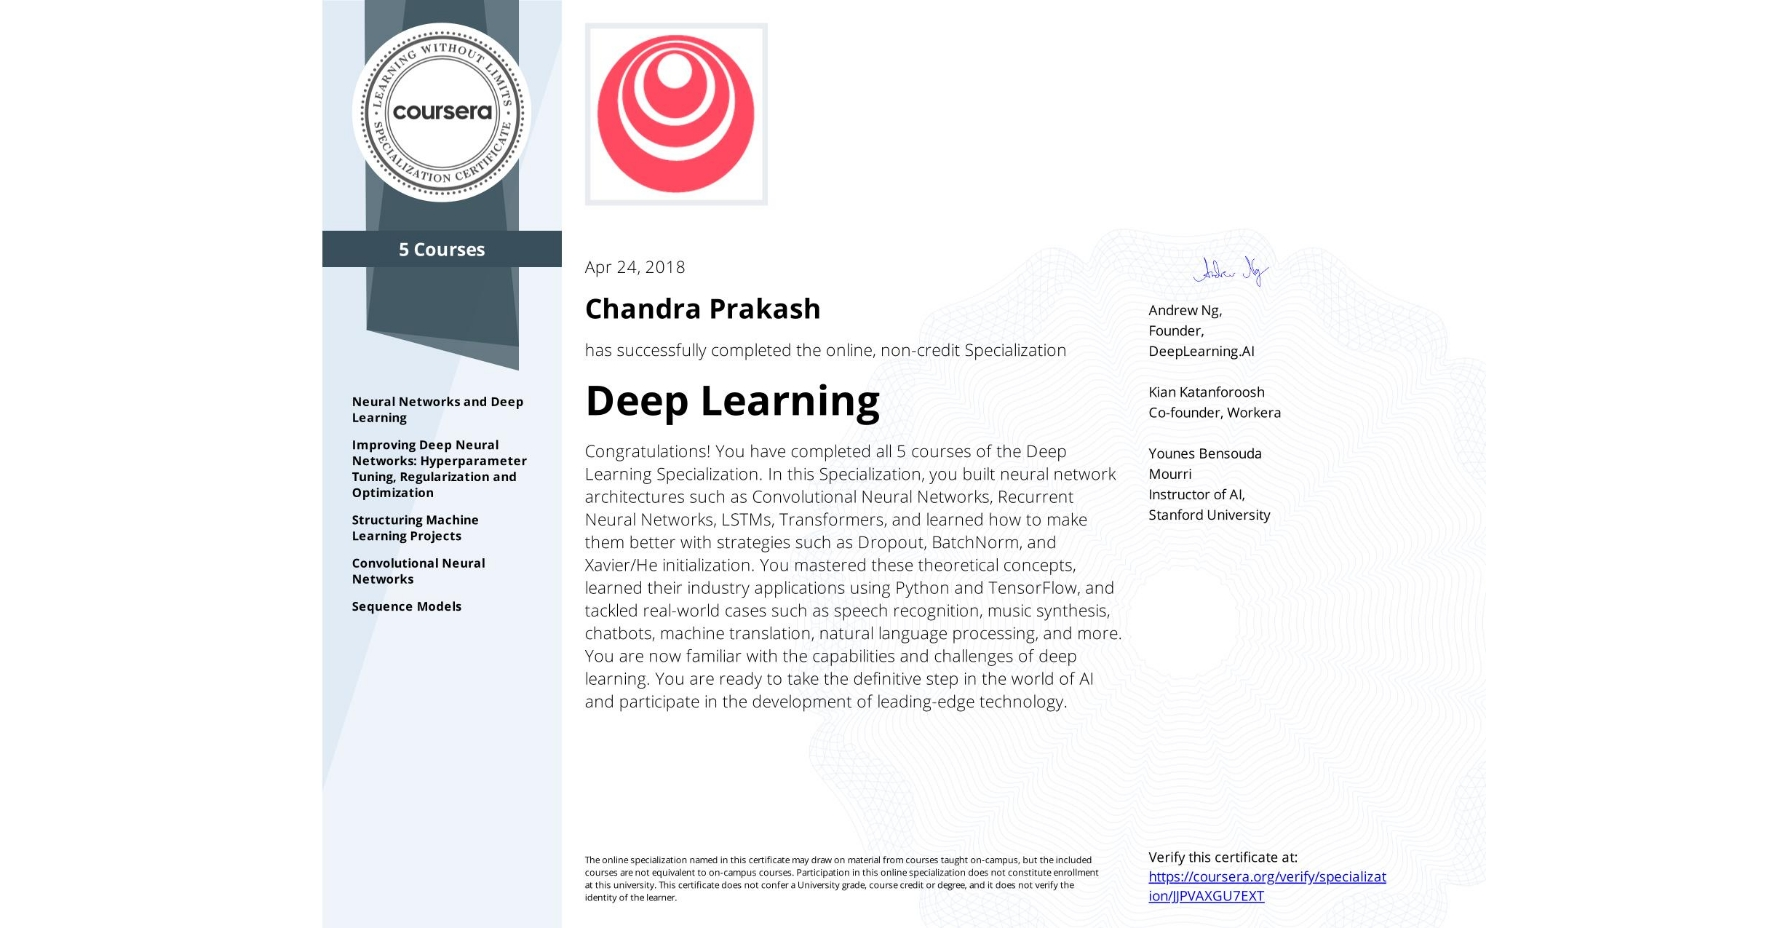 View certificate for Chandra Prakash, Deep Learning, offered through Coursera. The Deep Learning Specialization is designed to prepare learners to participate in the development of cutting-edge AI technology, and to understand the capability, the challenges, and the consequences of the rise of deep learning. Through five interconnected courses, learners develop a profound knowledge of the hottest AI algorithms, mastering deep learning from its foundations (neural networks) to its industry applications (Computer Vision, Natural Language Processing, Speech Recognition, etc.).